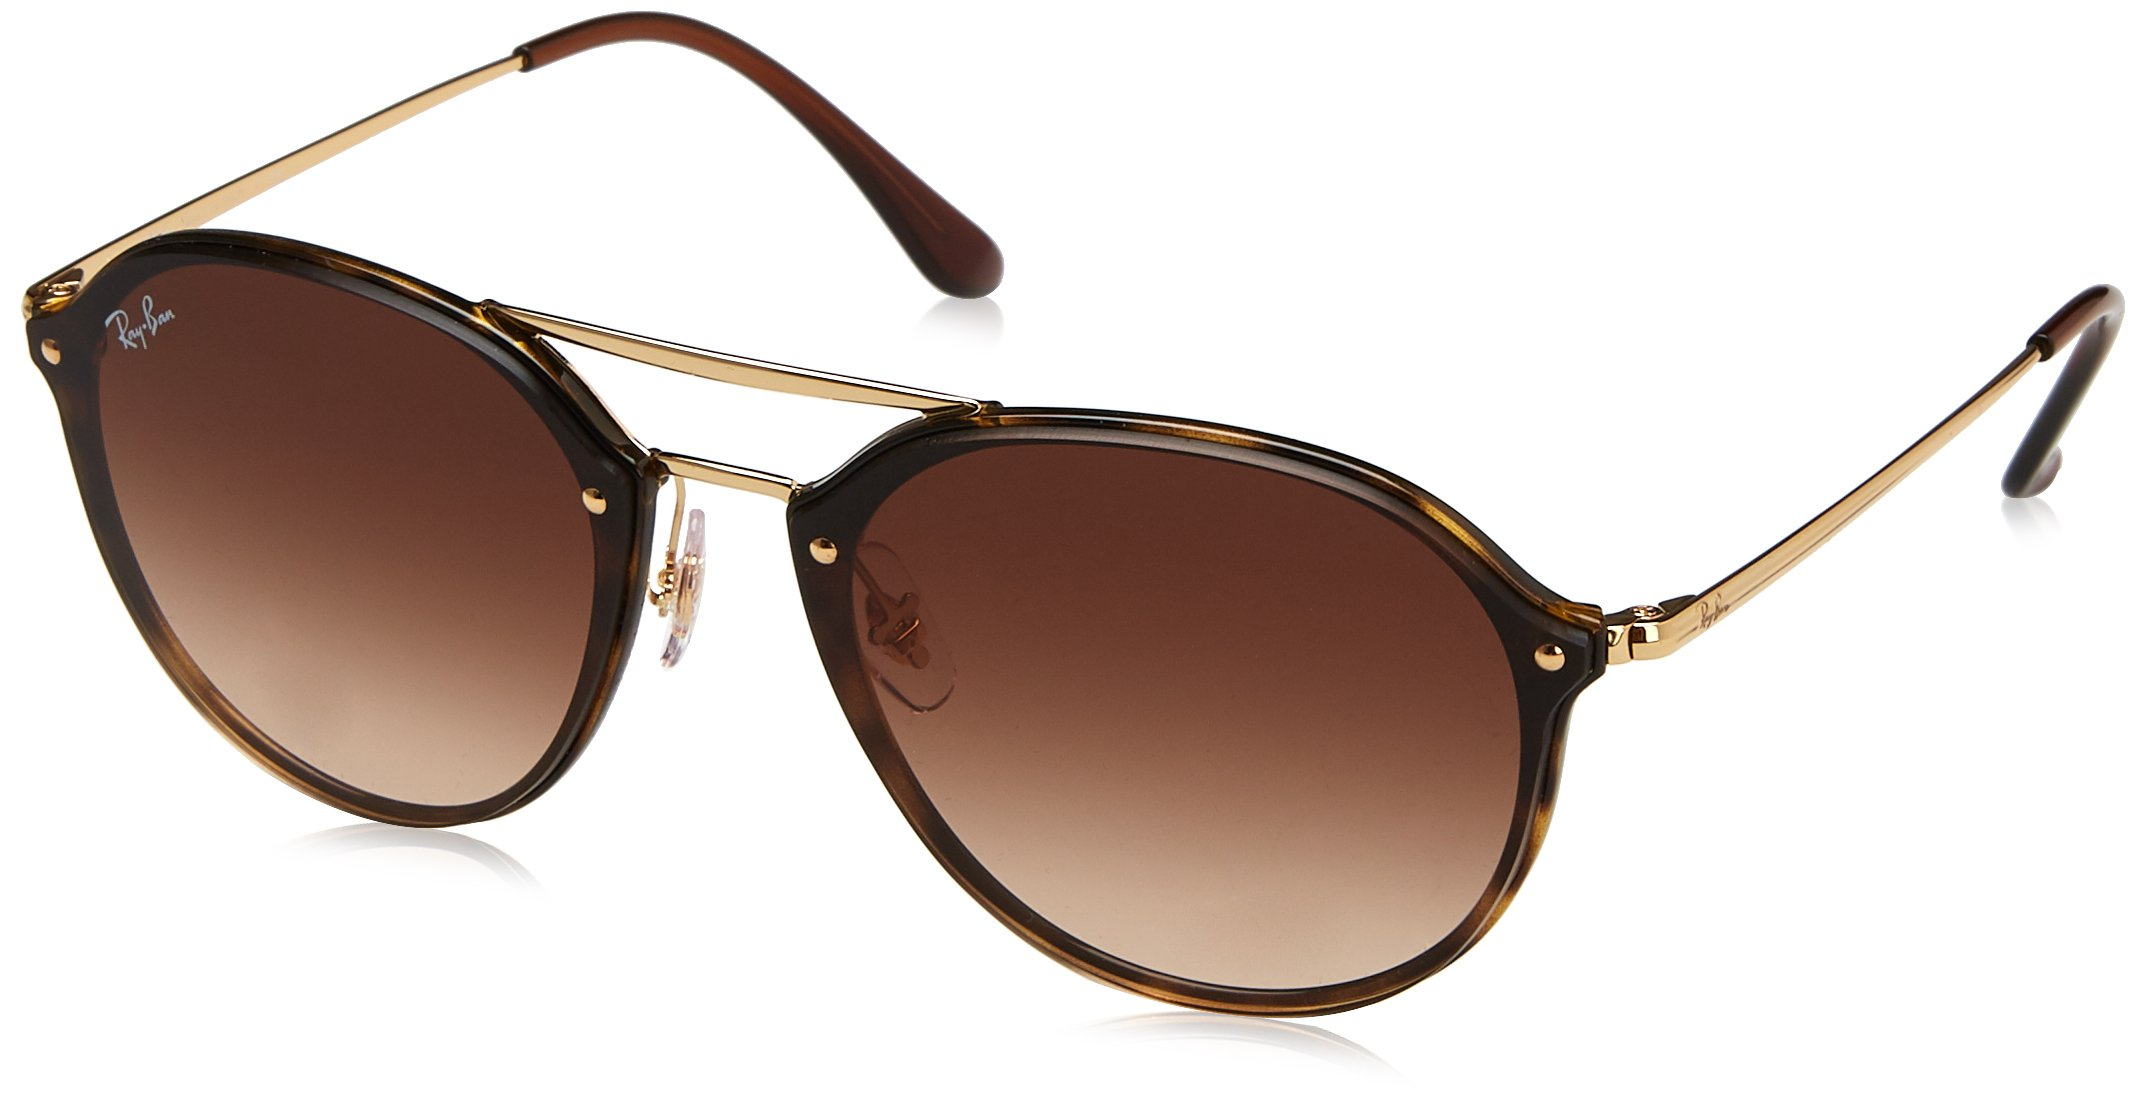 c7b8dca6c6591 Ray-Ban RAYBAN Unisex-Erwachsene Sonnenbrille Blaze Double Bridge, Braun  (Light Havana Browngradient), 62